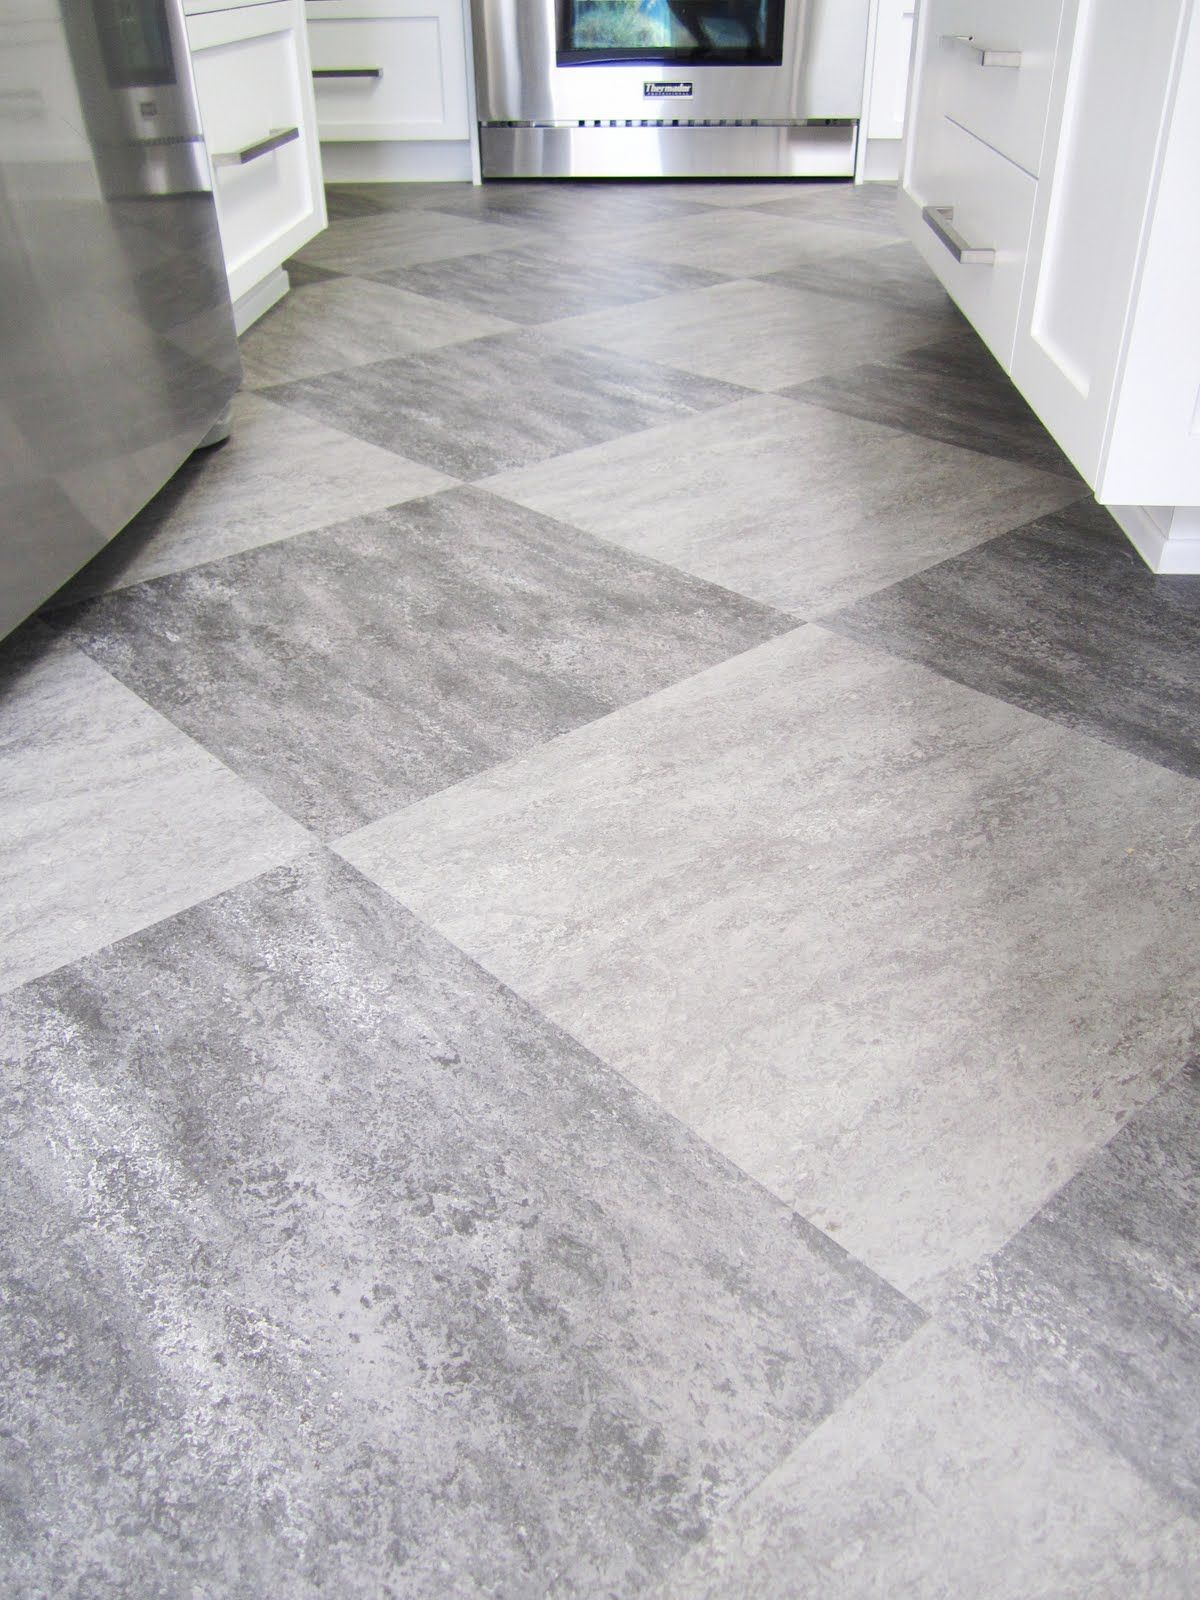 kitchen floor lino harlequin tile floors harlequin of grey on grey tiles is used on the